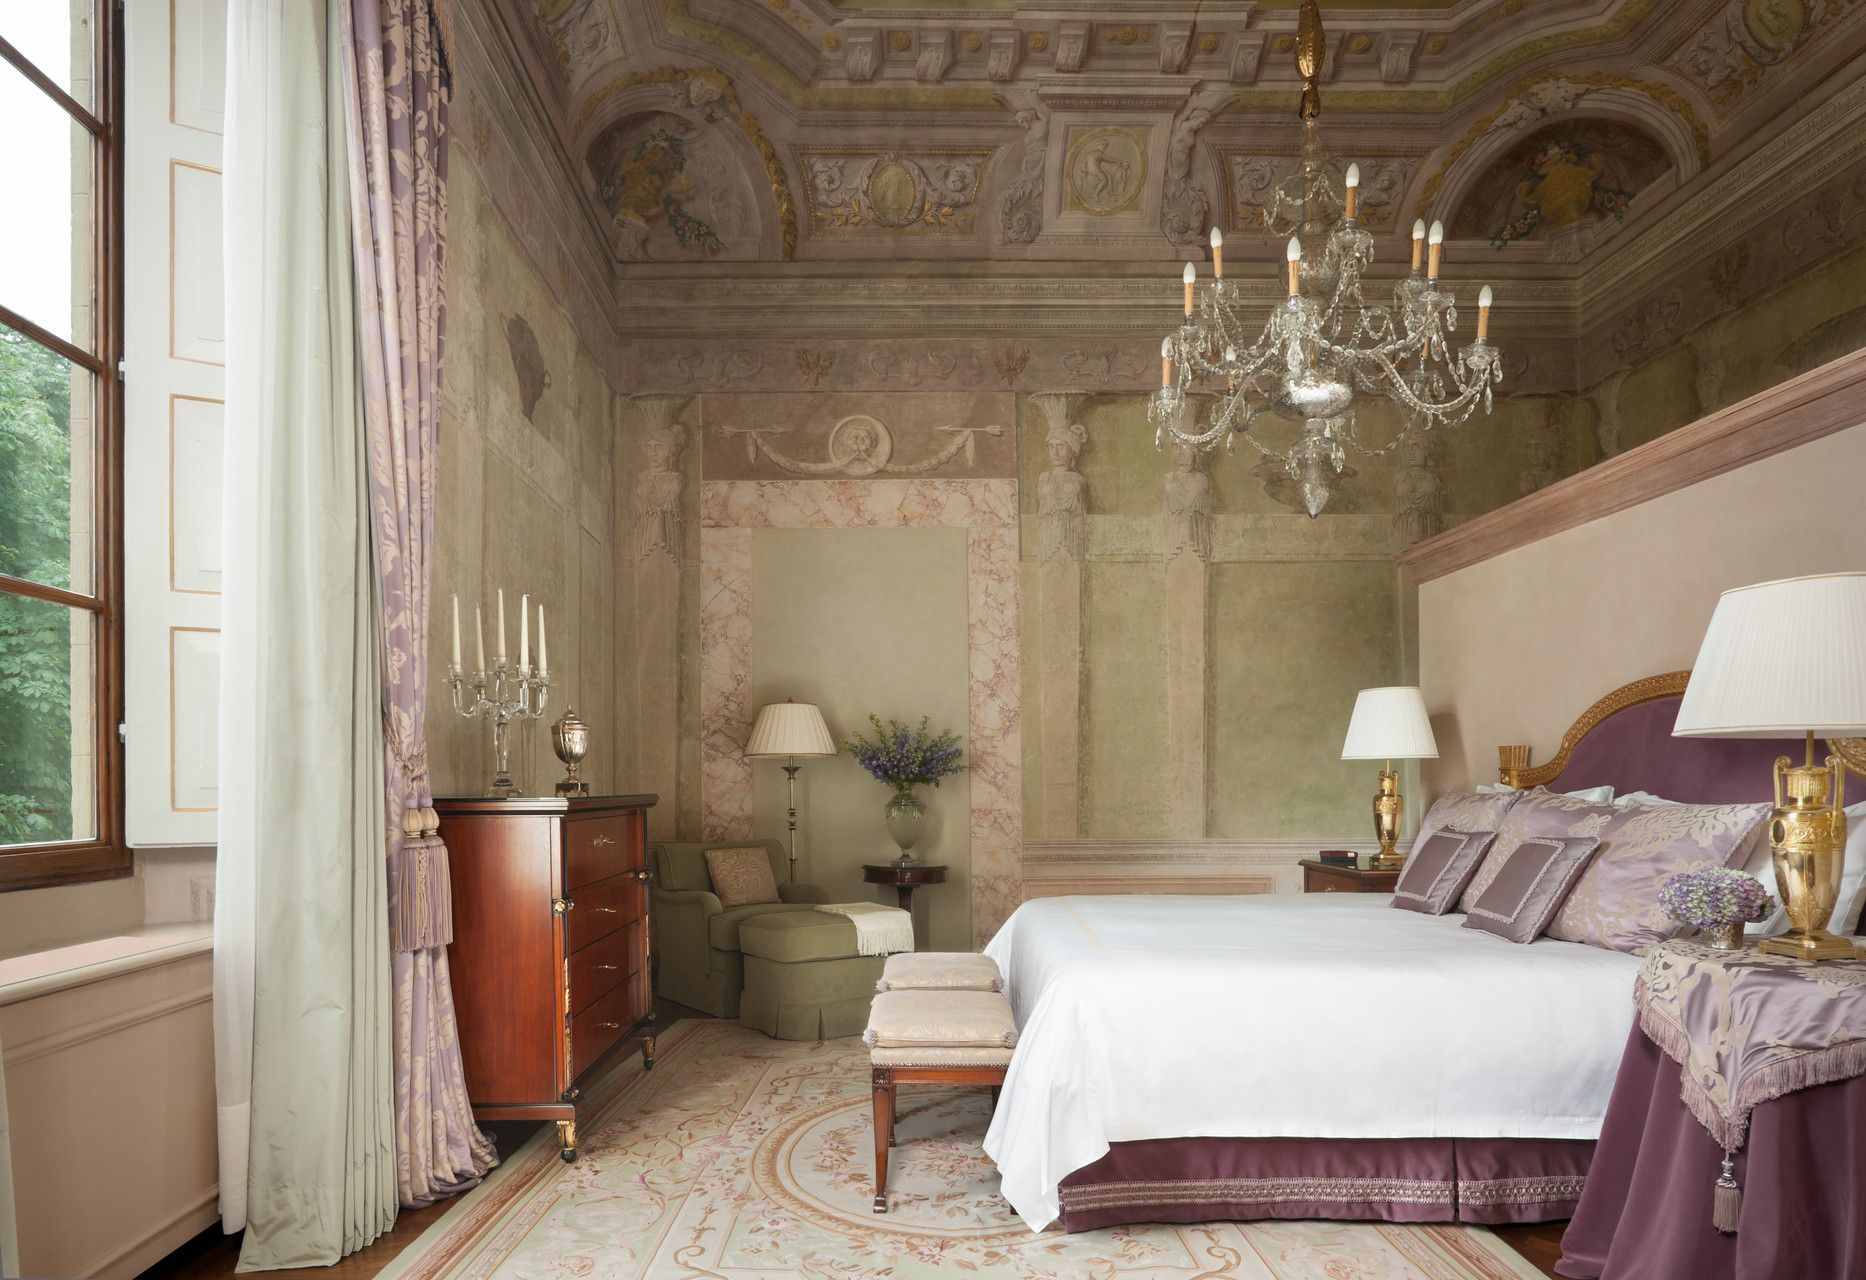 Noble Suite Cancellerie at the Four Seasons Firenze Hotel in Florence, Italy